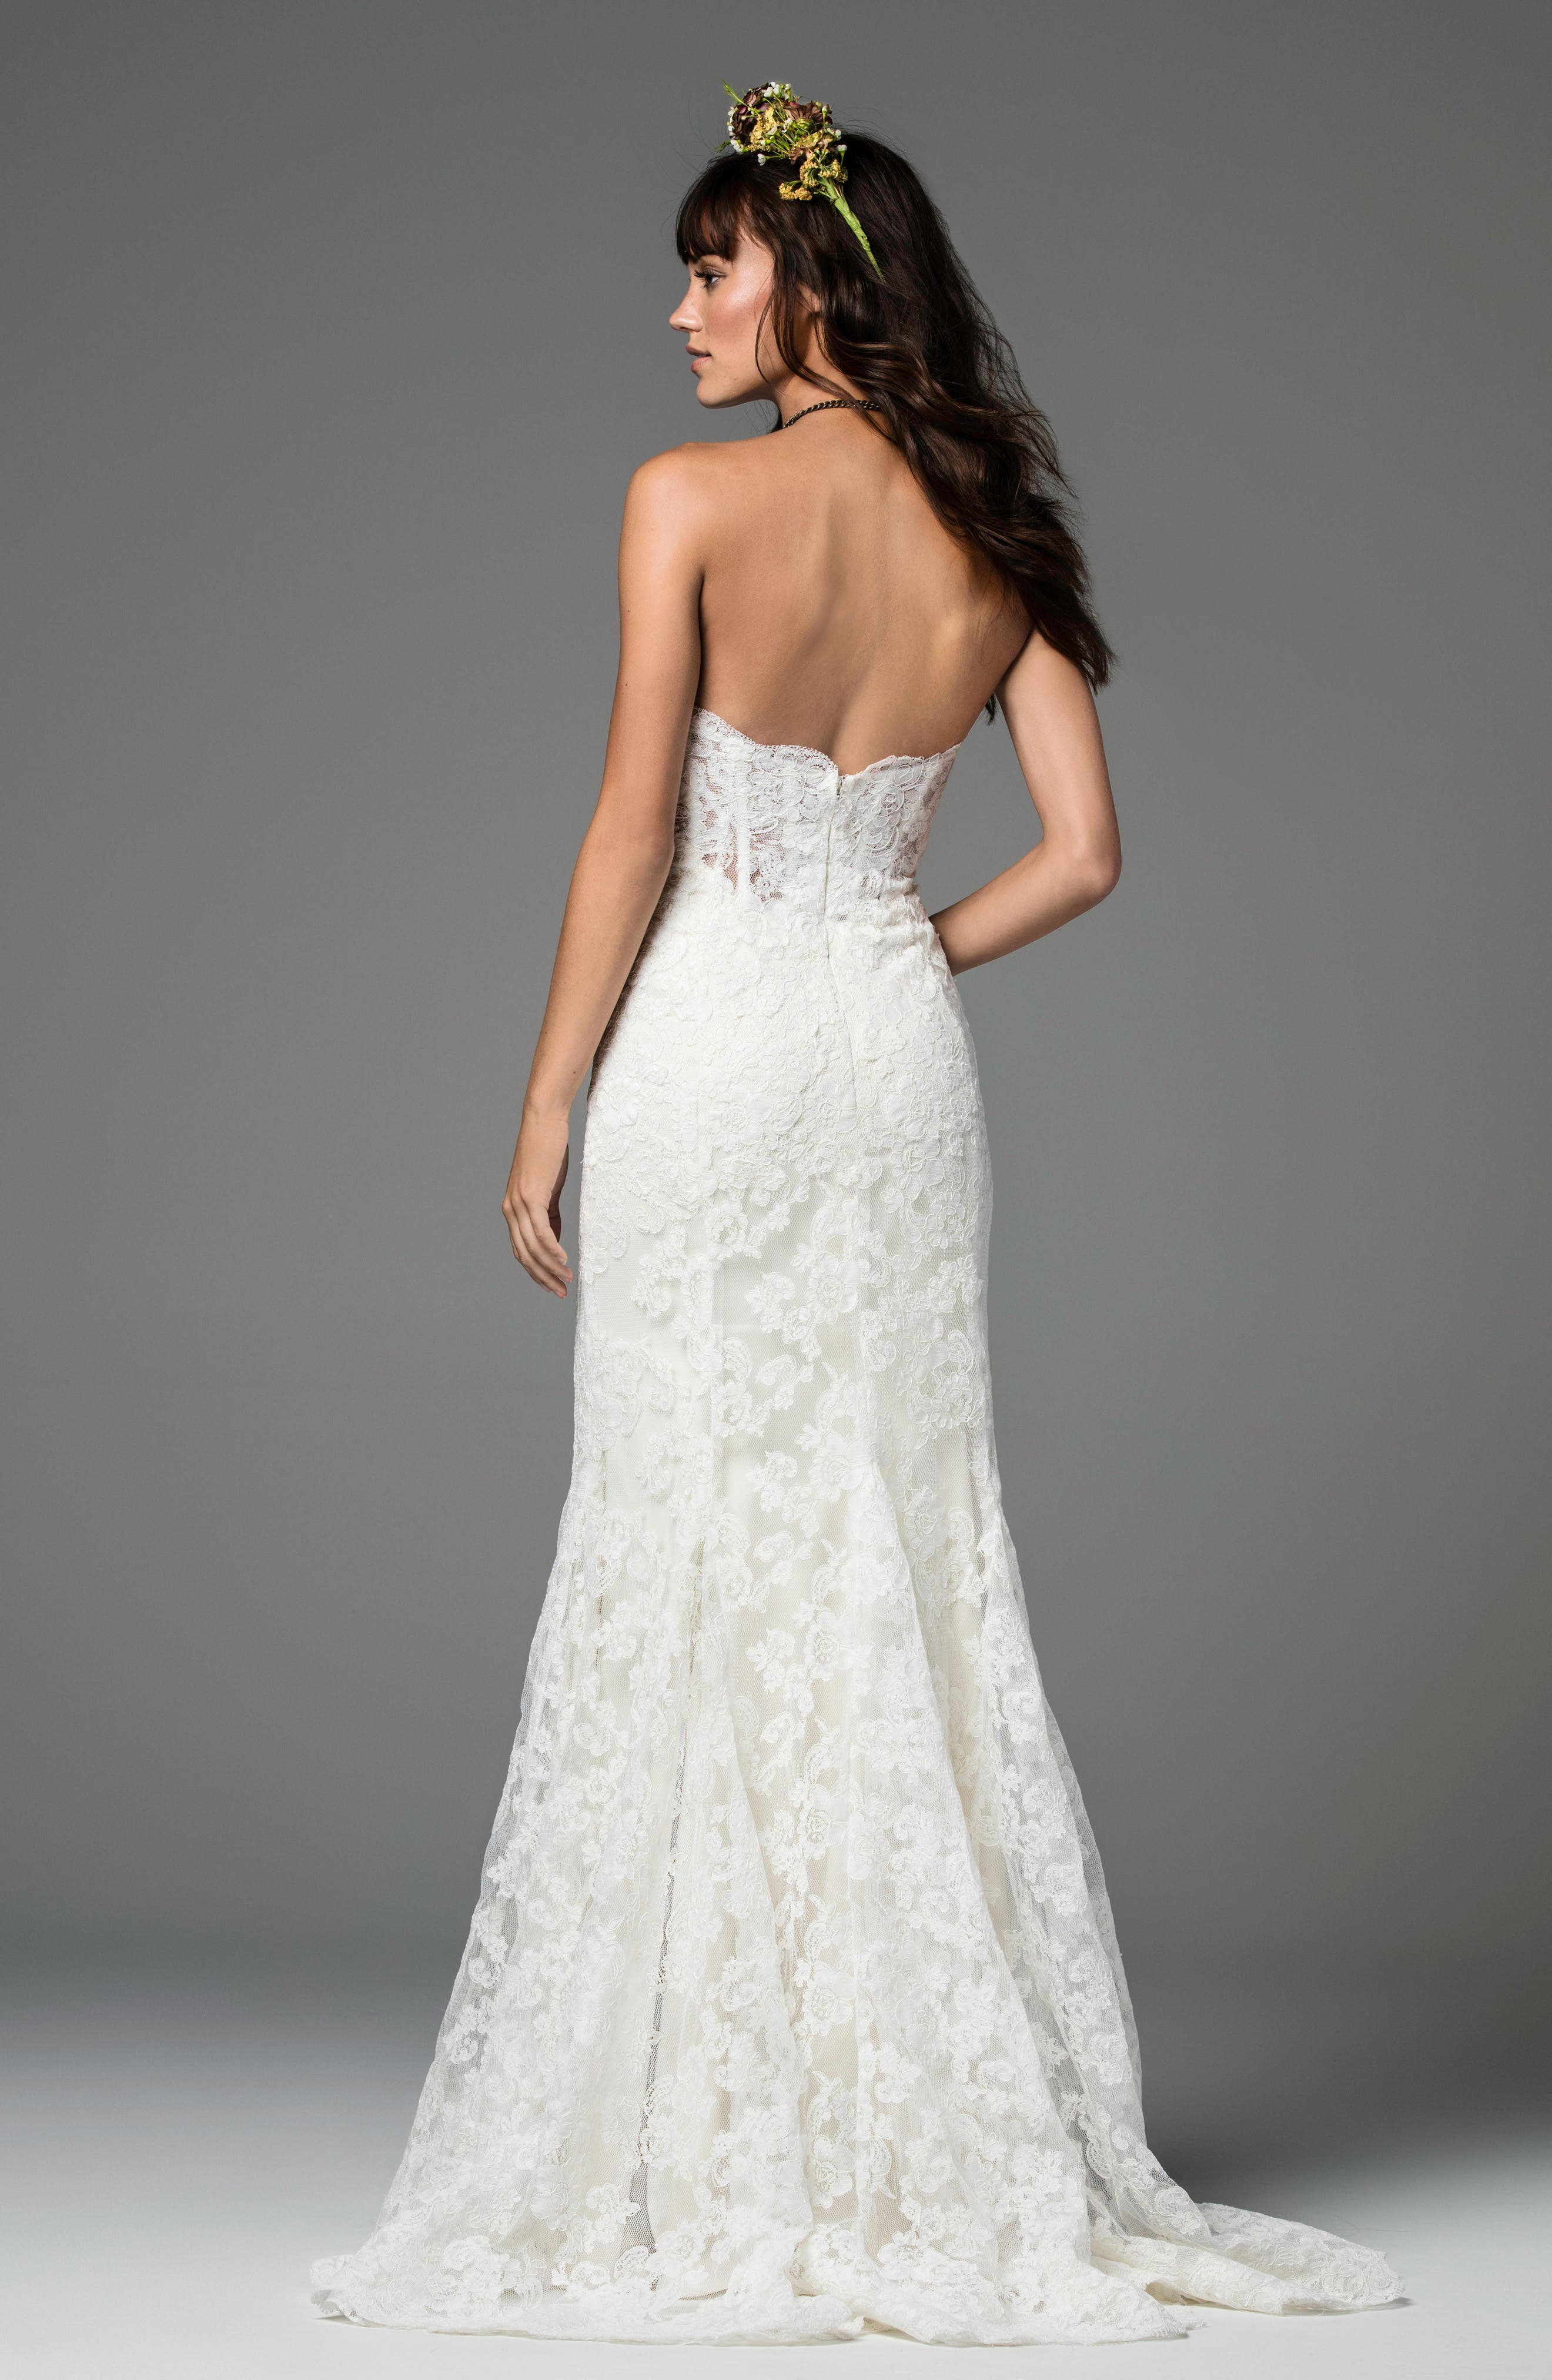 Liesel Strapless Lace Mermaid Gown,                             Alternate thumbnail 2, color,                             IVORY